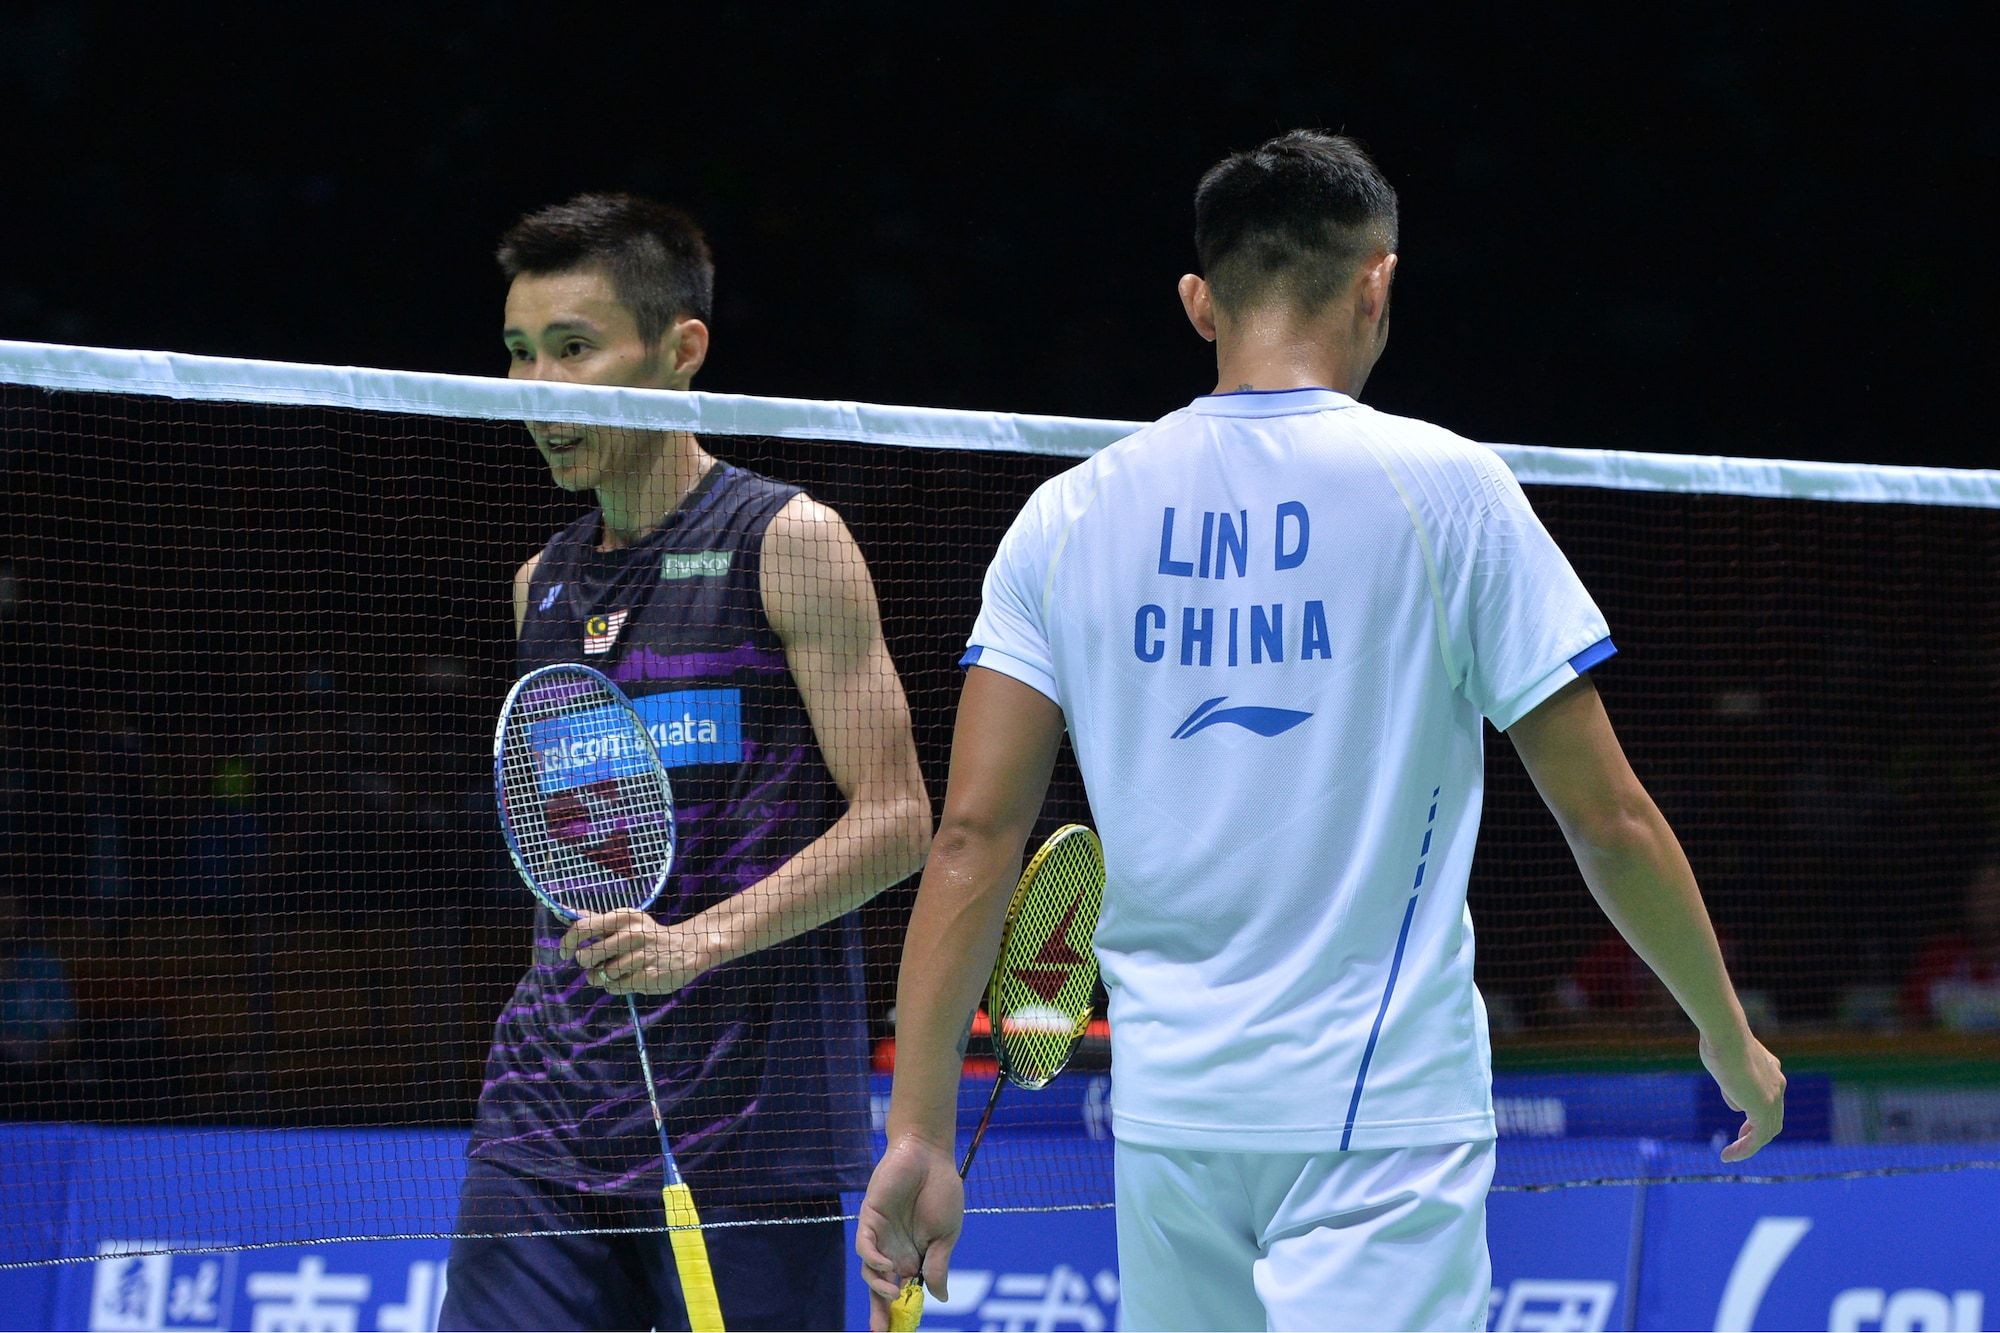 Lin Dan and Lee Chong Wei's legendary rivalry is one shaped by fierce battles and mutual admiration